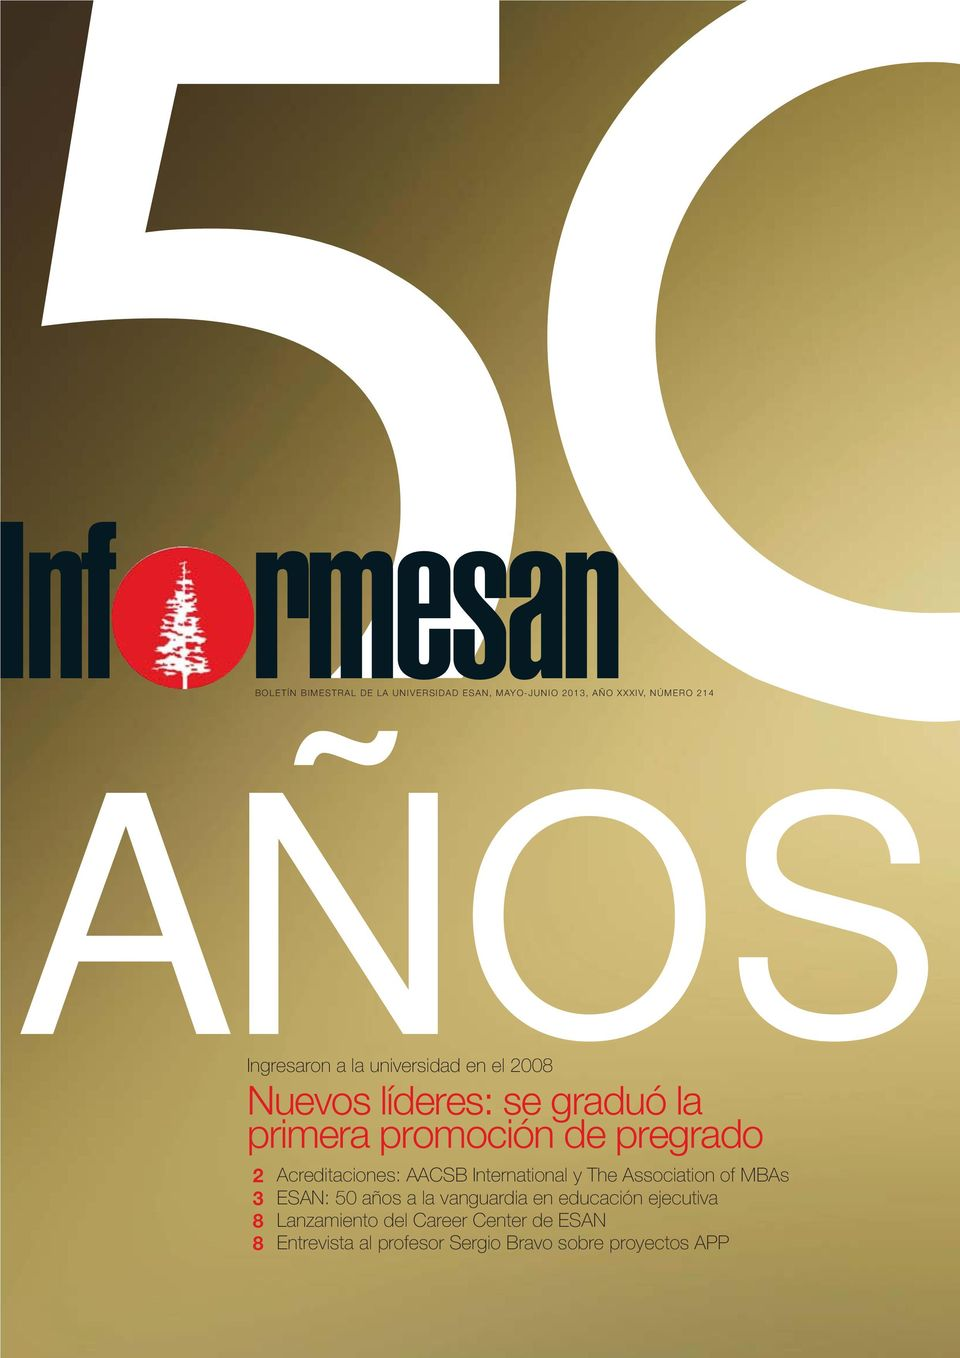 Acreditaciones: AACSB International y The Association of MBAs 3 ESAN: 50 años a la vanguardia en